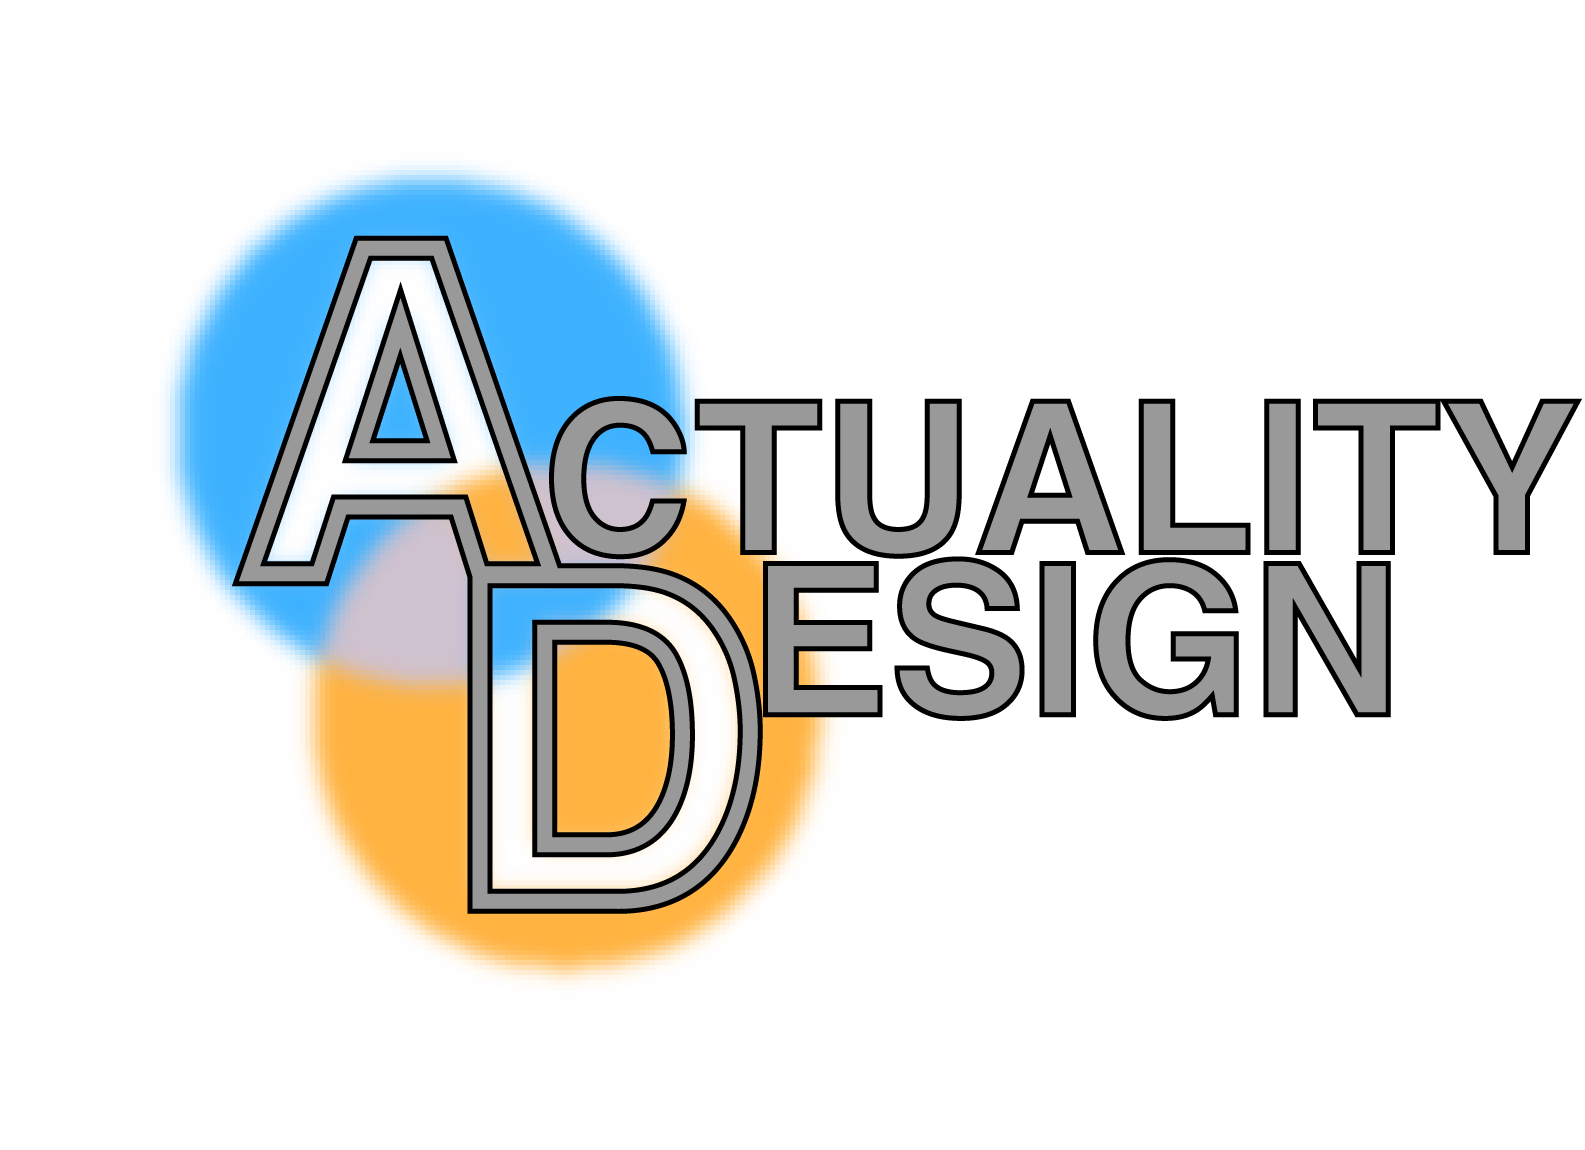 Actuality-Design